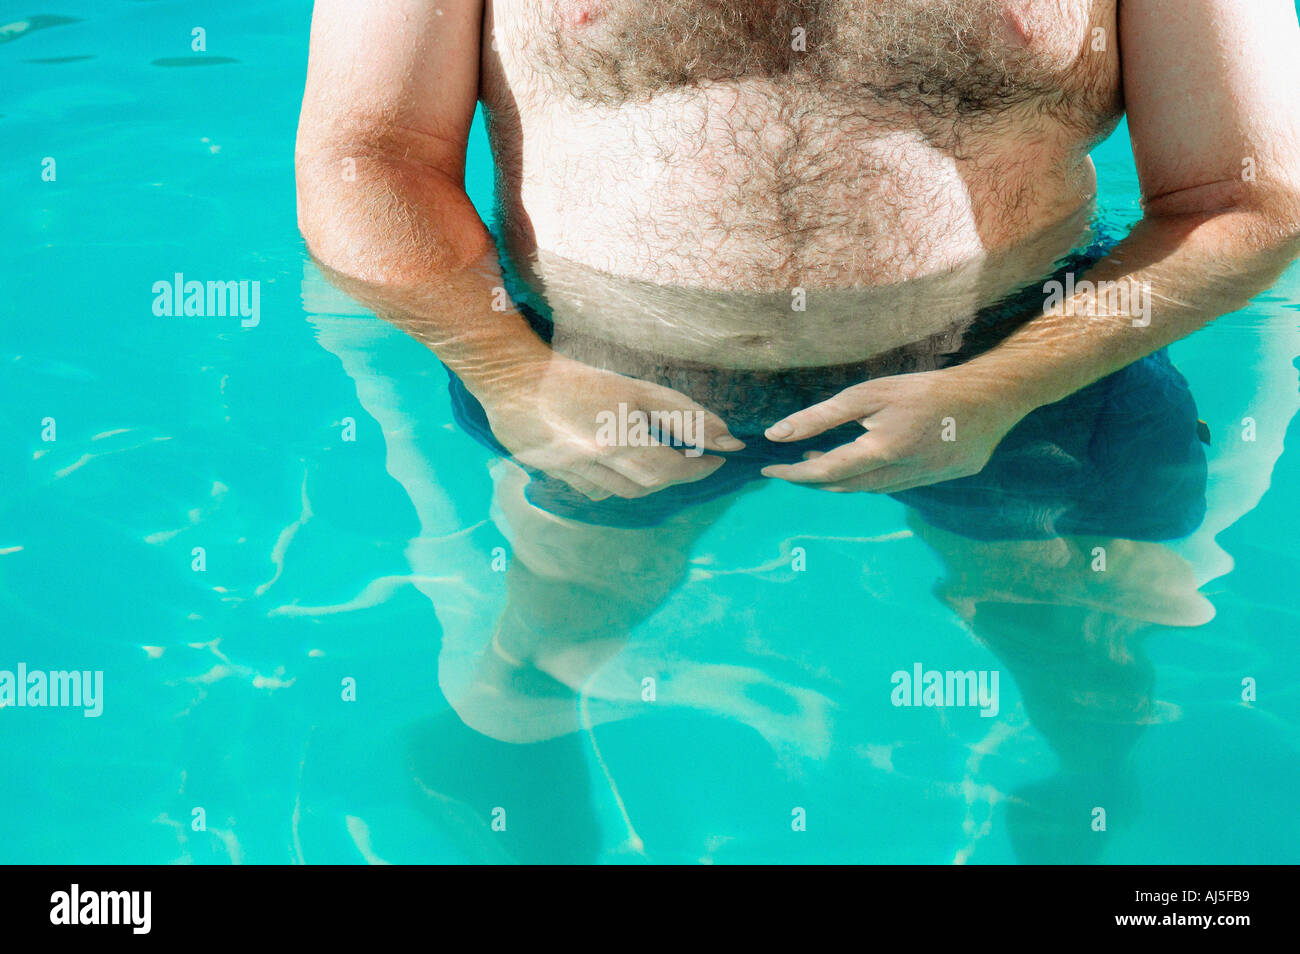 Overweight man in swimming pool - Stock Image